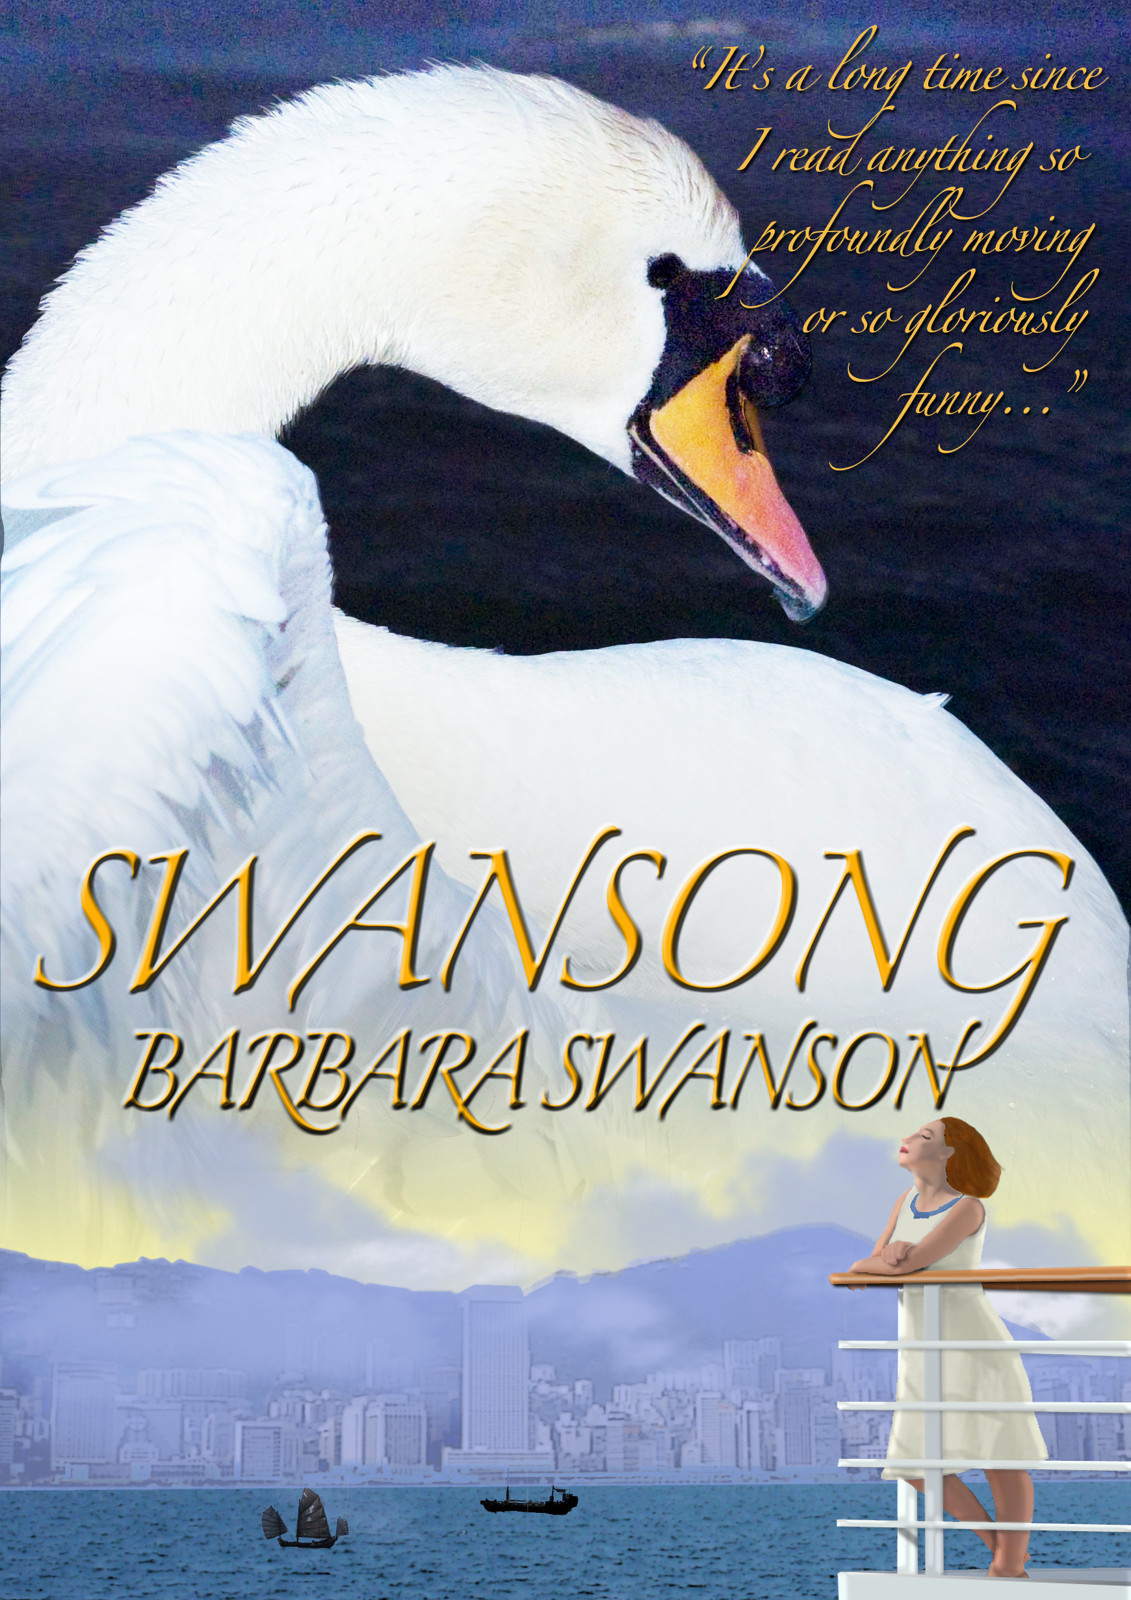 Extract from 'Swansong'